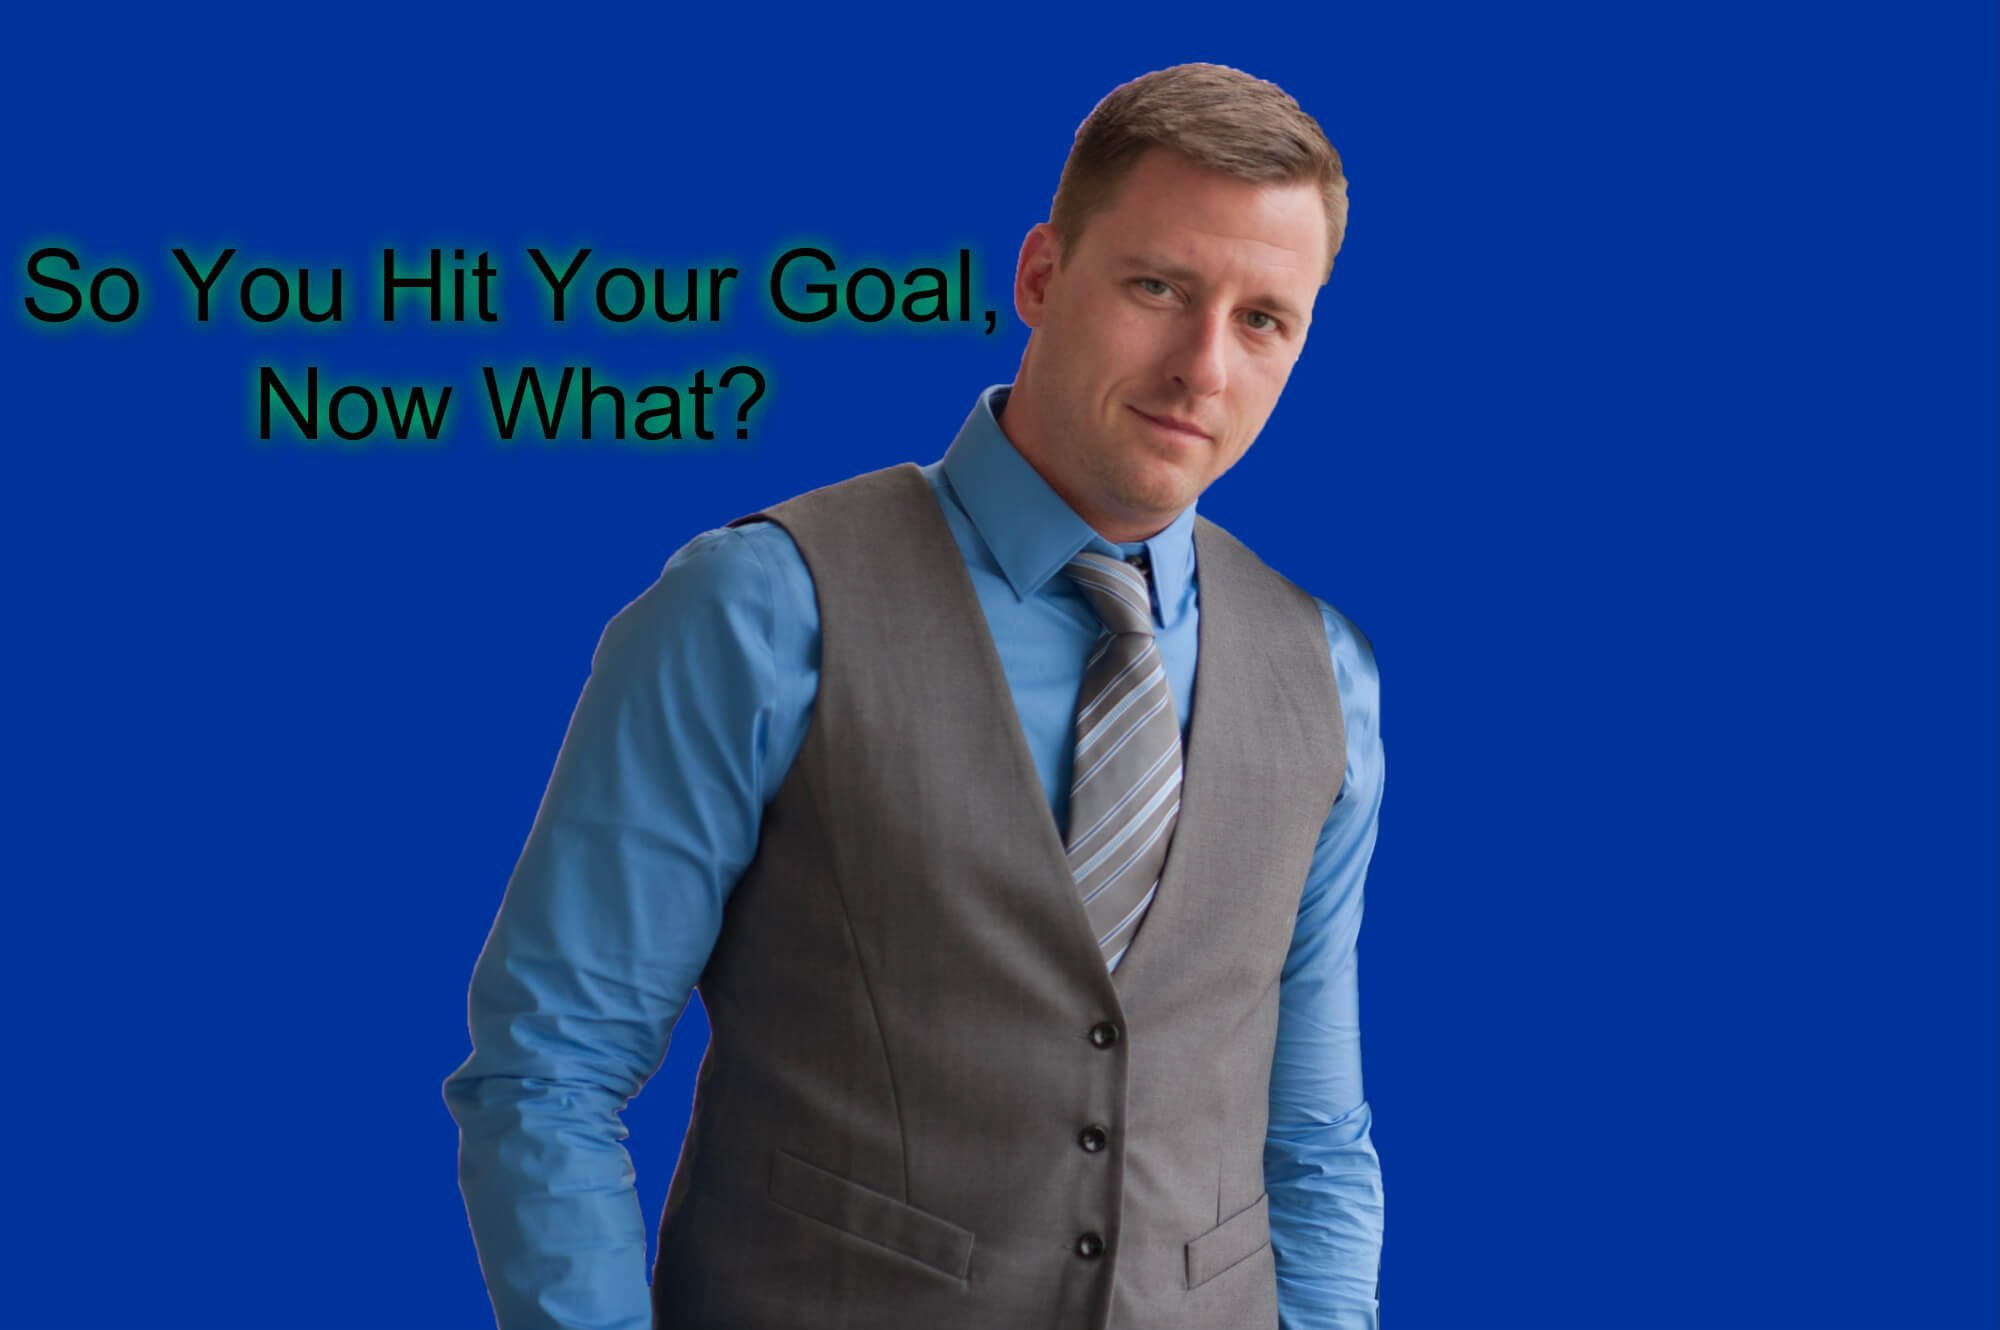 What To Do When You Reach Your Goals [Video]